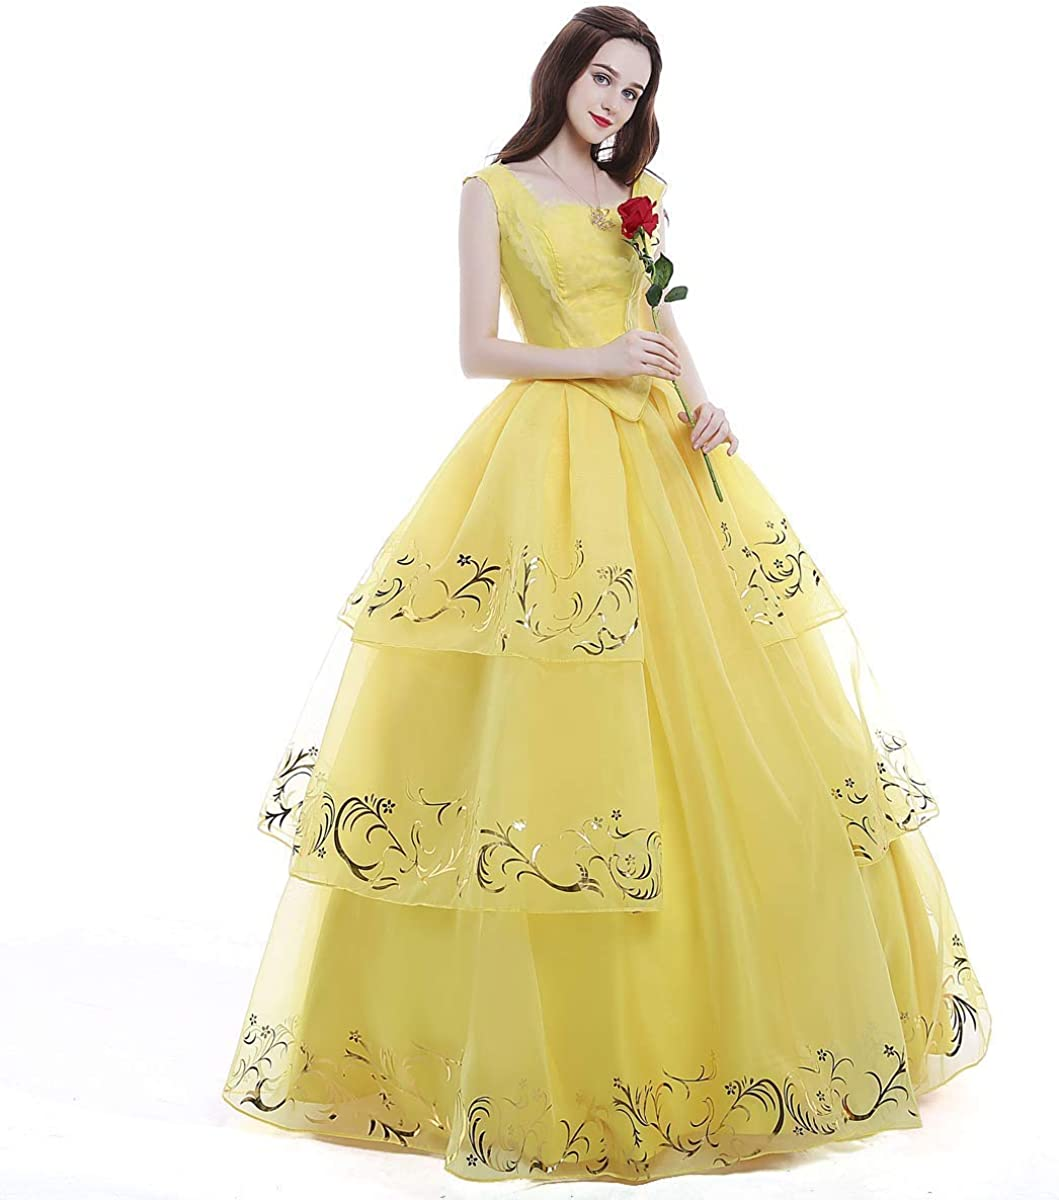 iCos Women Girl Princess Belle Dress Up Ball Gown Long Yellow Layered  Halloween Costume Adult